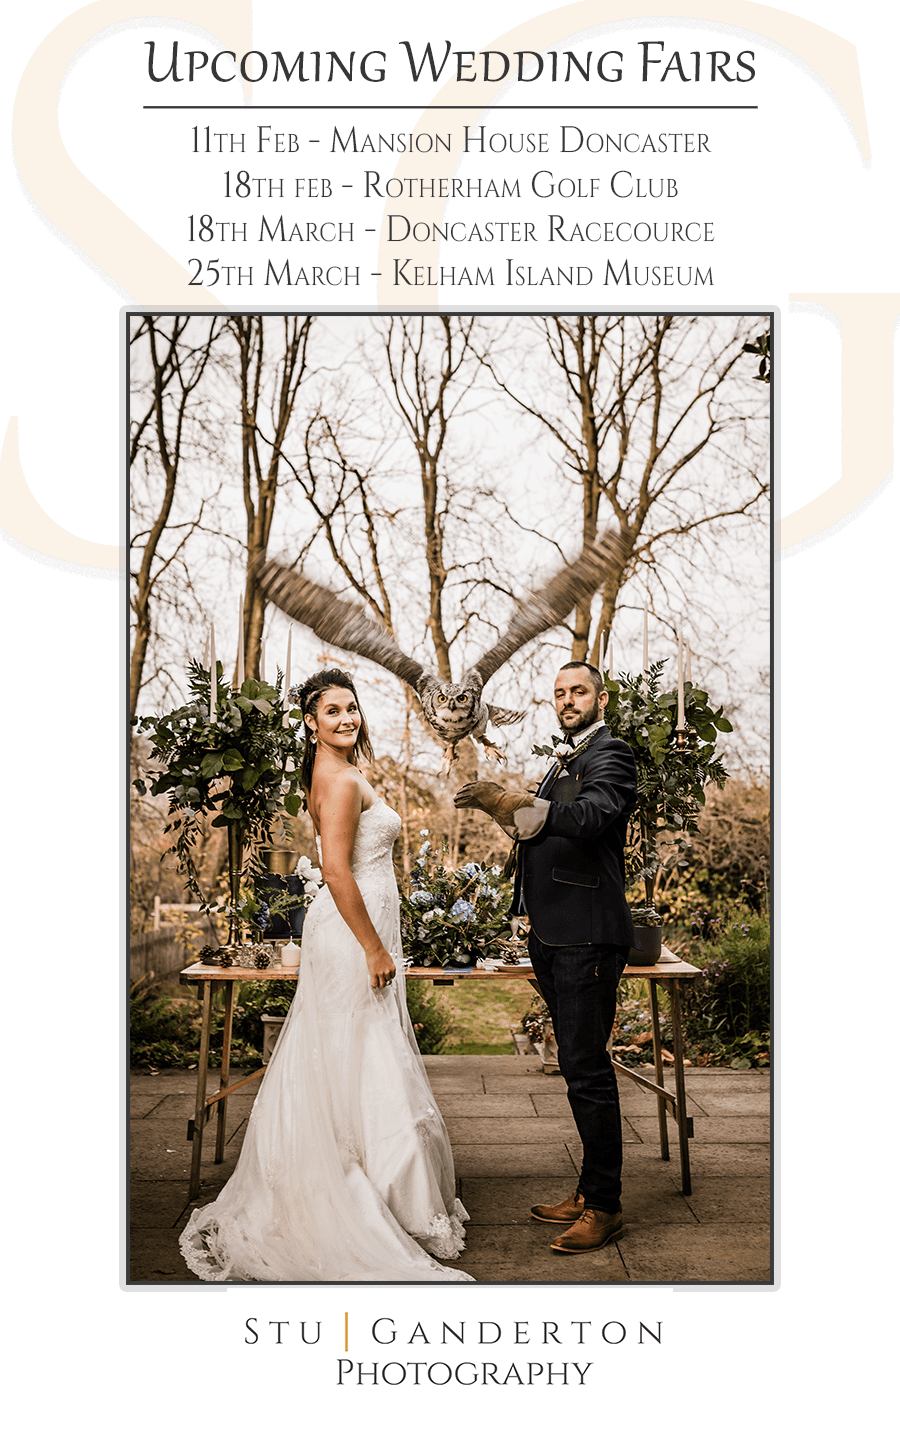 sheffield wedding photographer attending wedding fairs